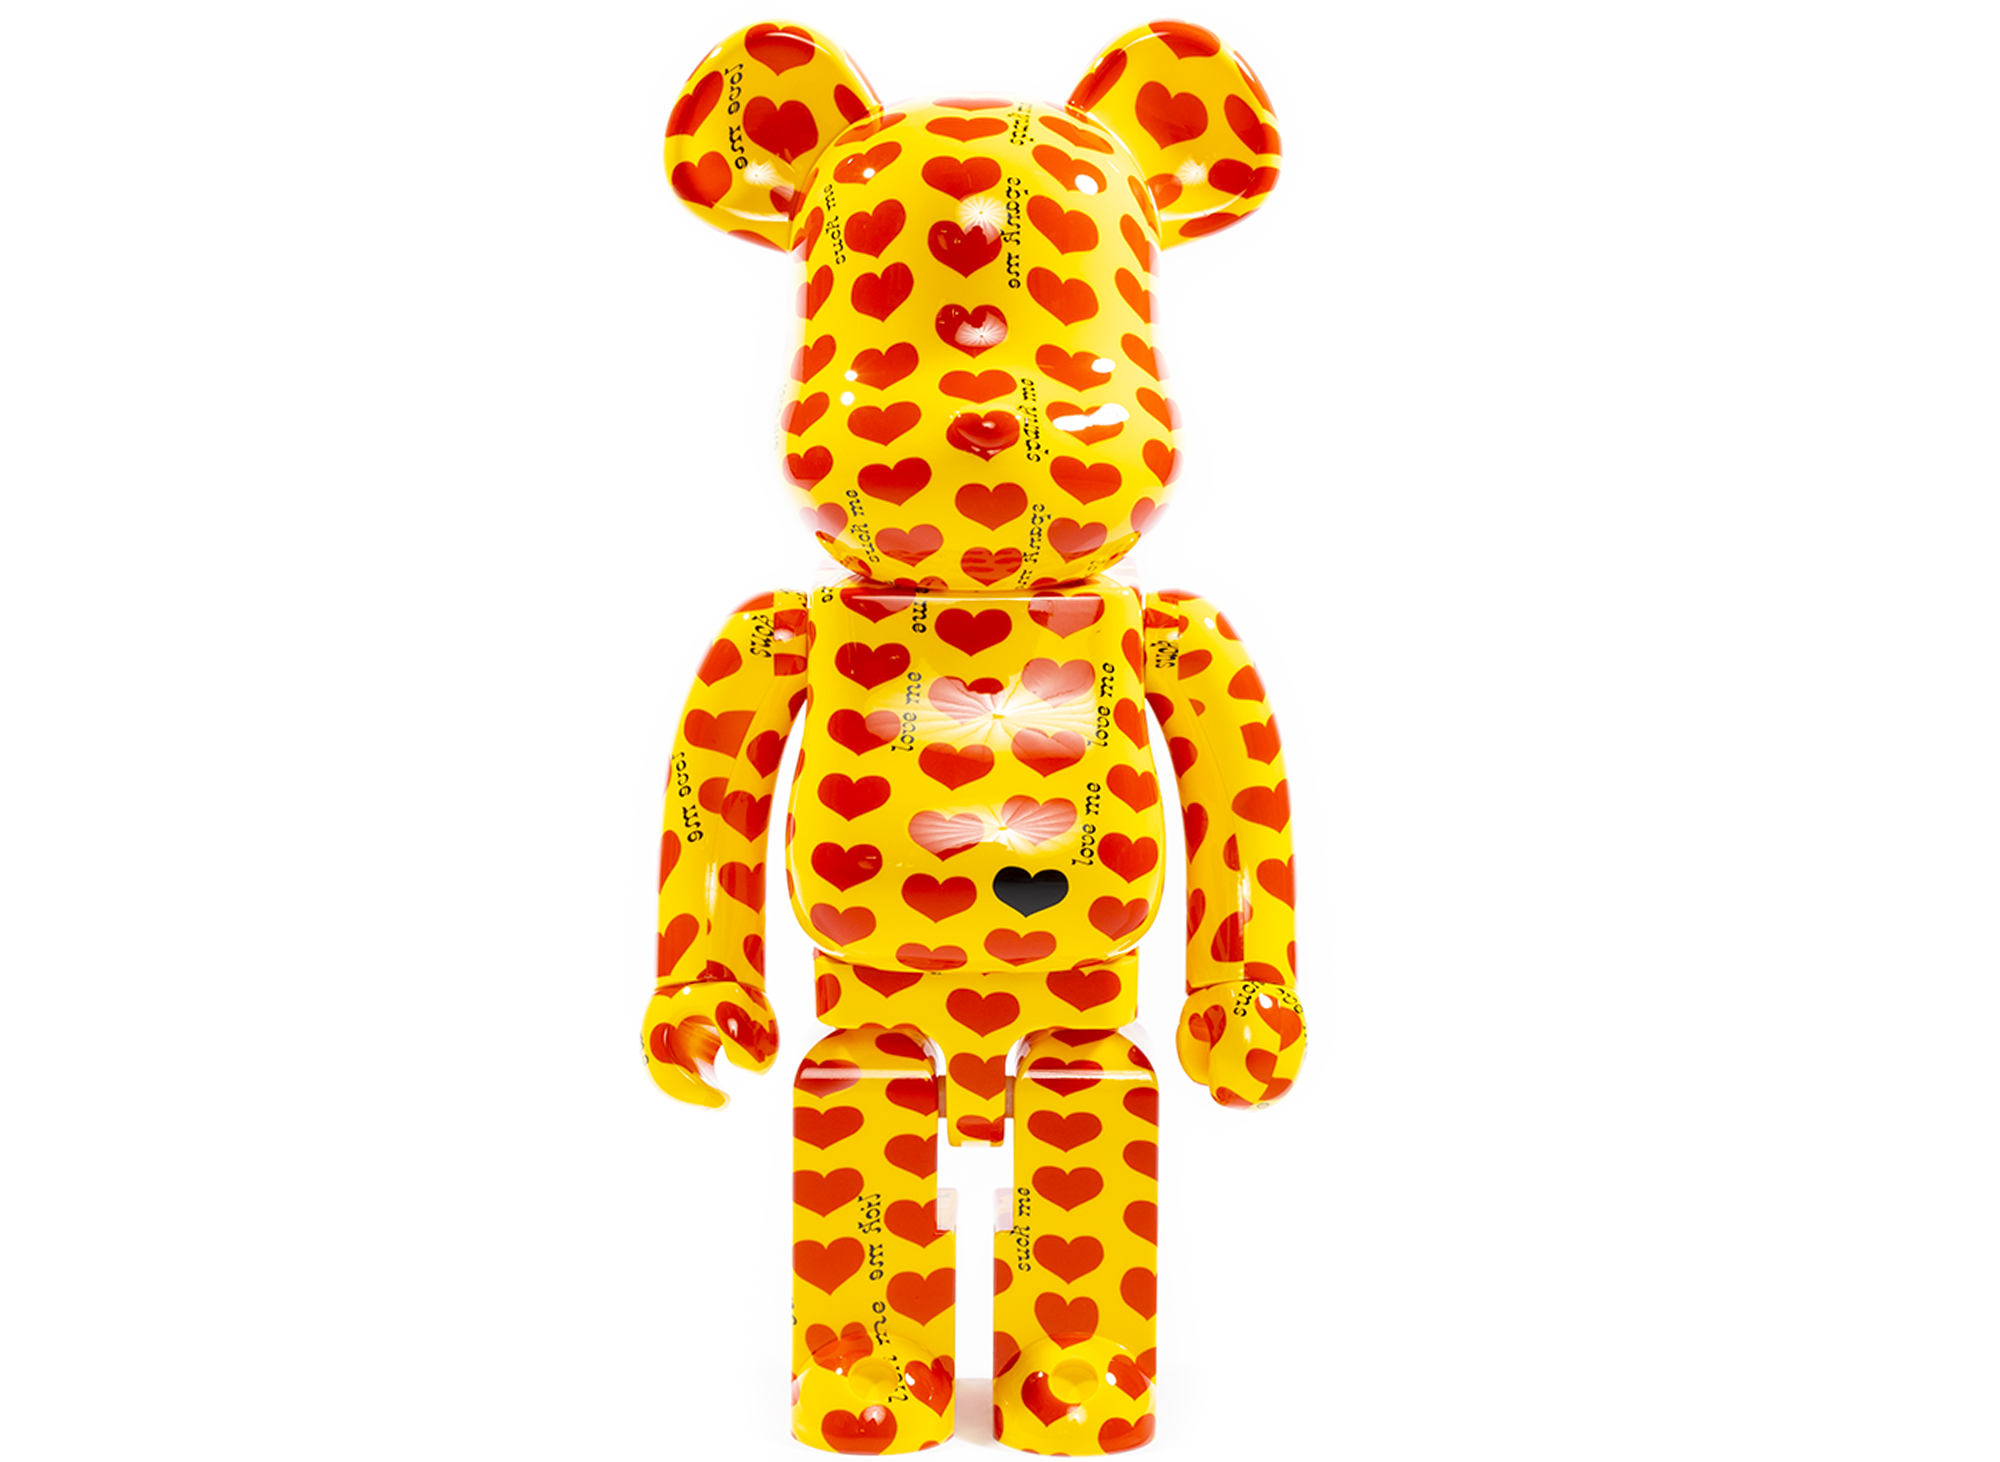 Medicom BearBrick Yellow Heart 1000%